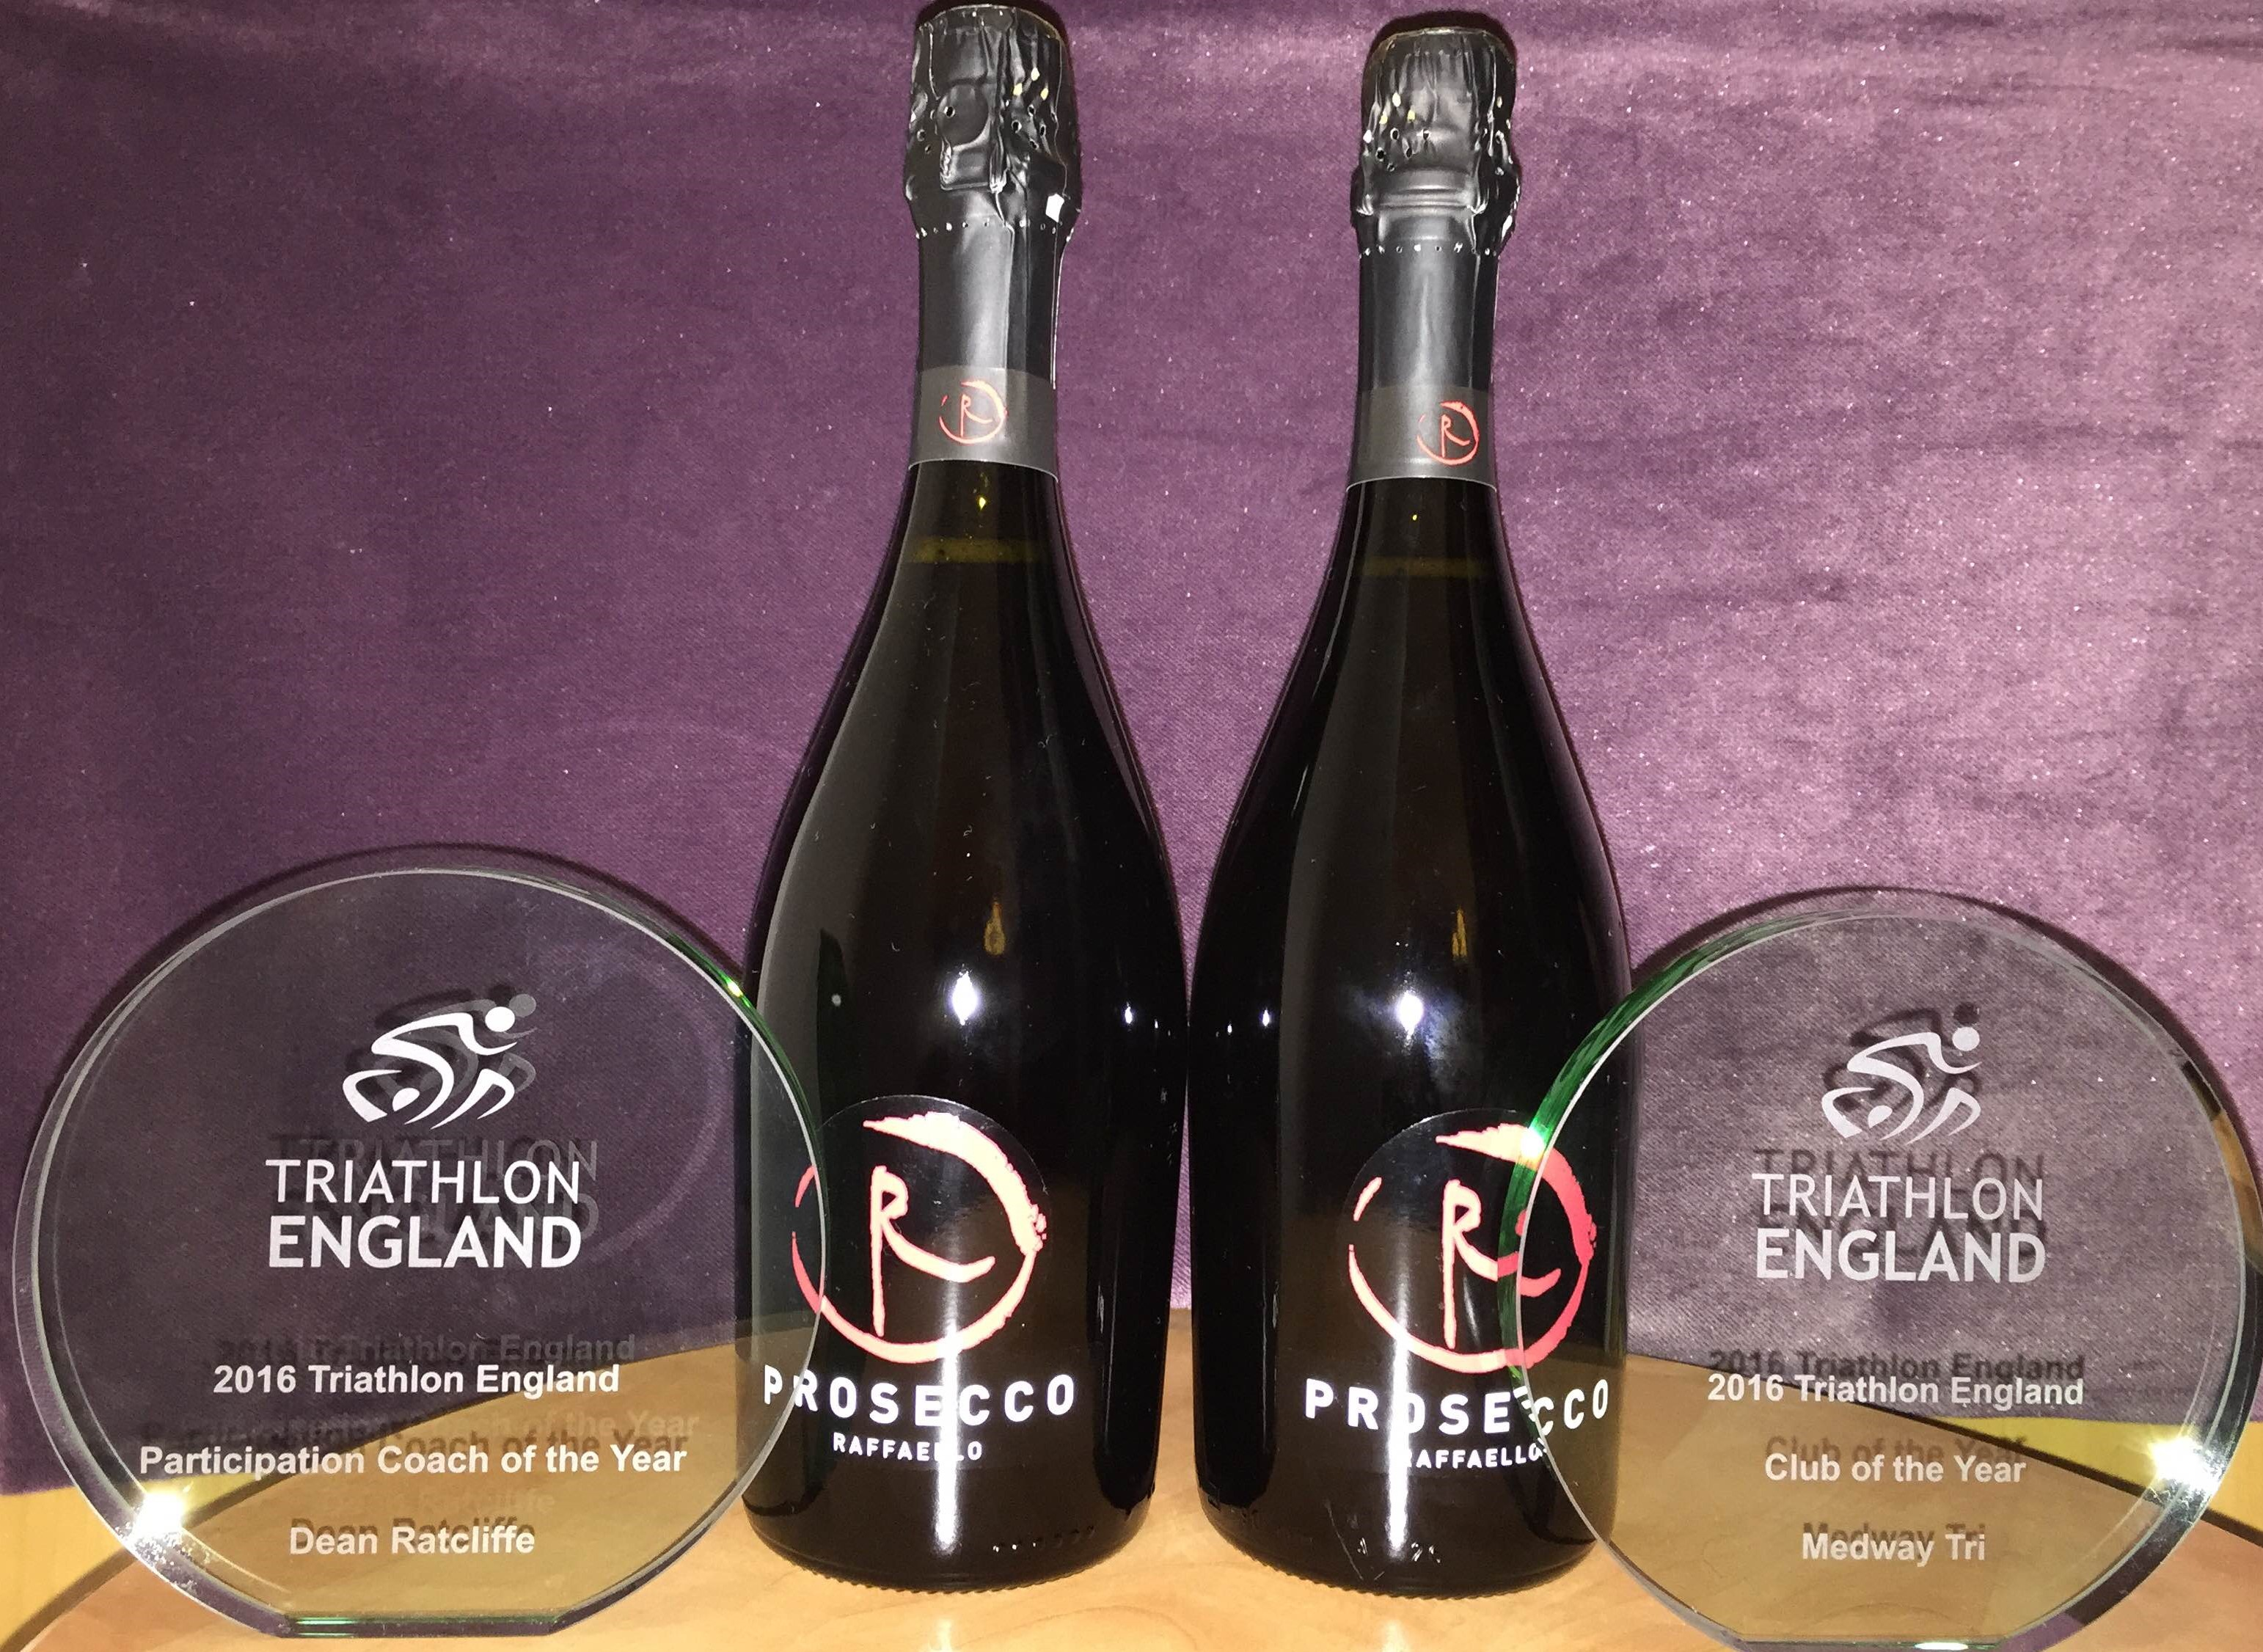 Triathlon England 'National Club' and 'National Participation Coach' of 2016.